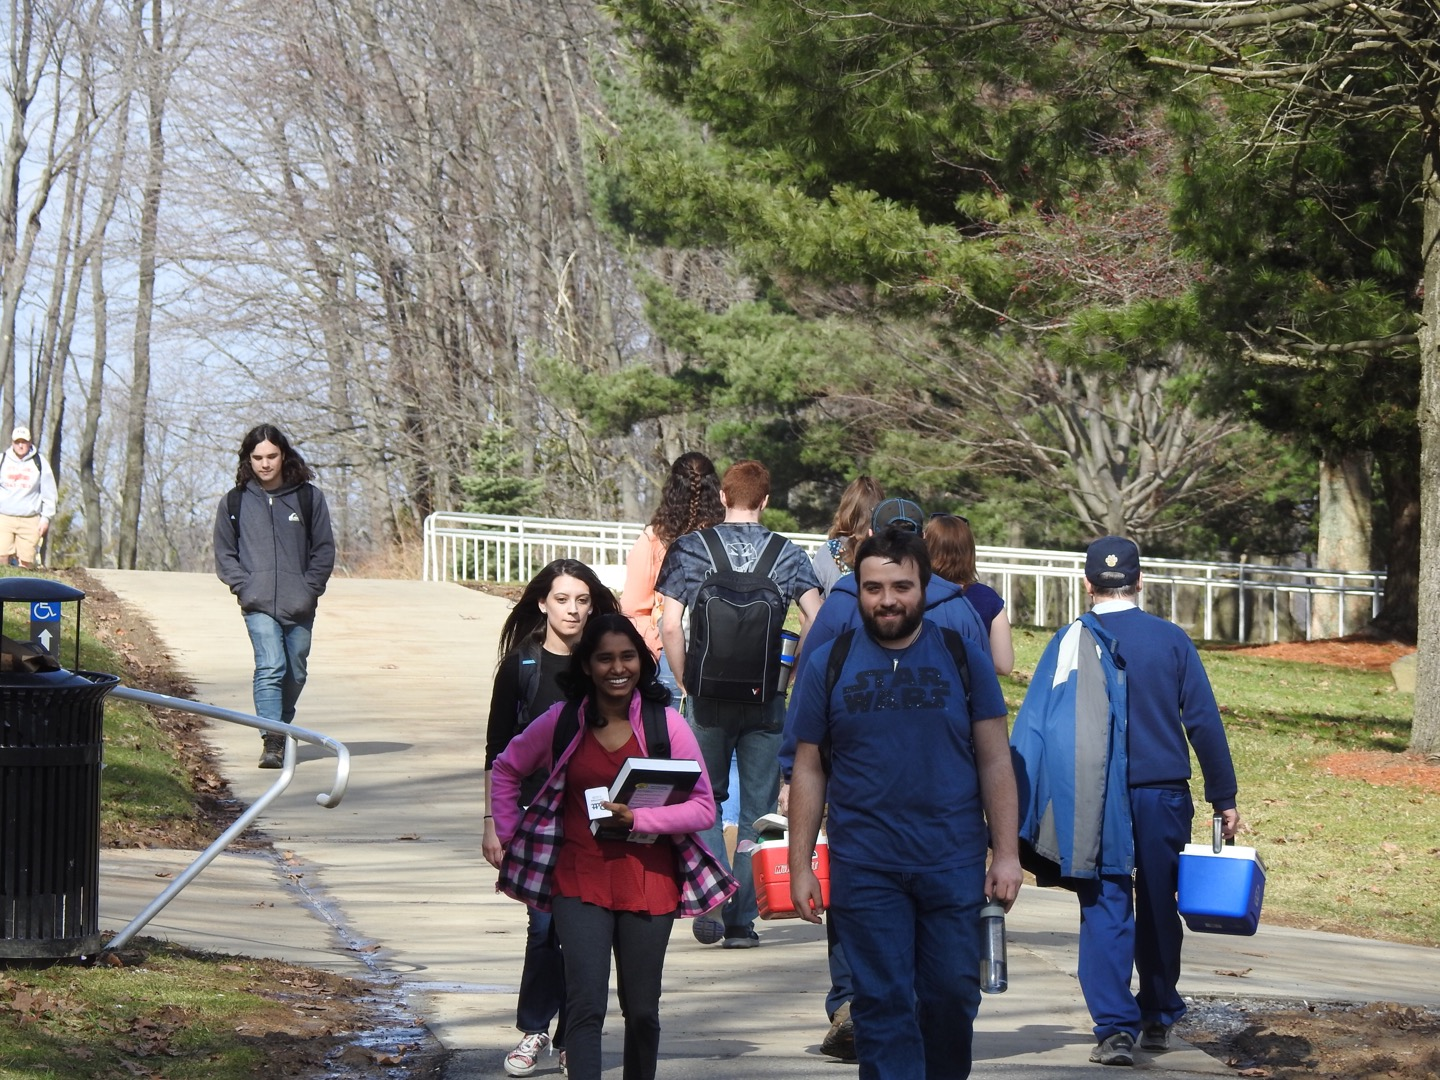 After the sidewalk and bike path connect project is completed, students are to be able to safely walk from campus to the Richland Town Centre.